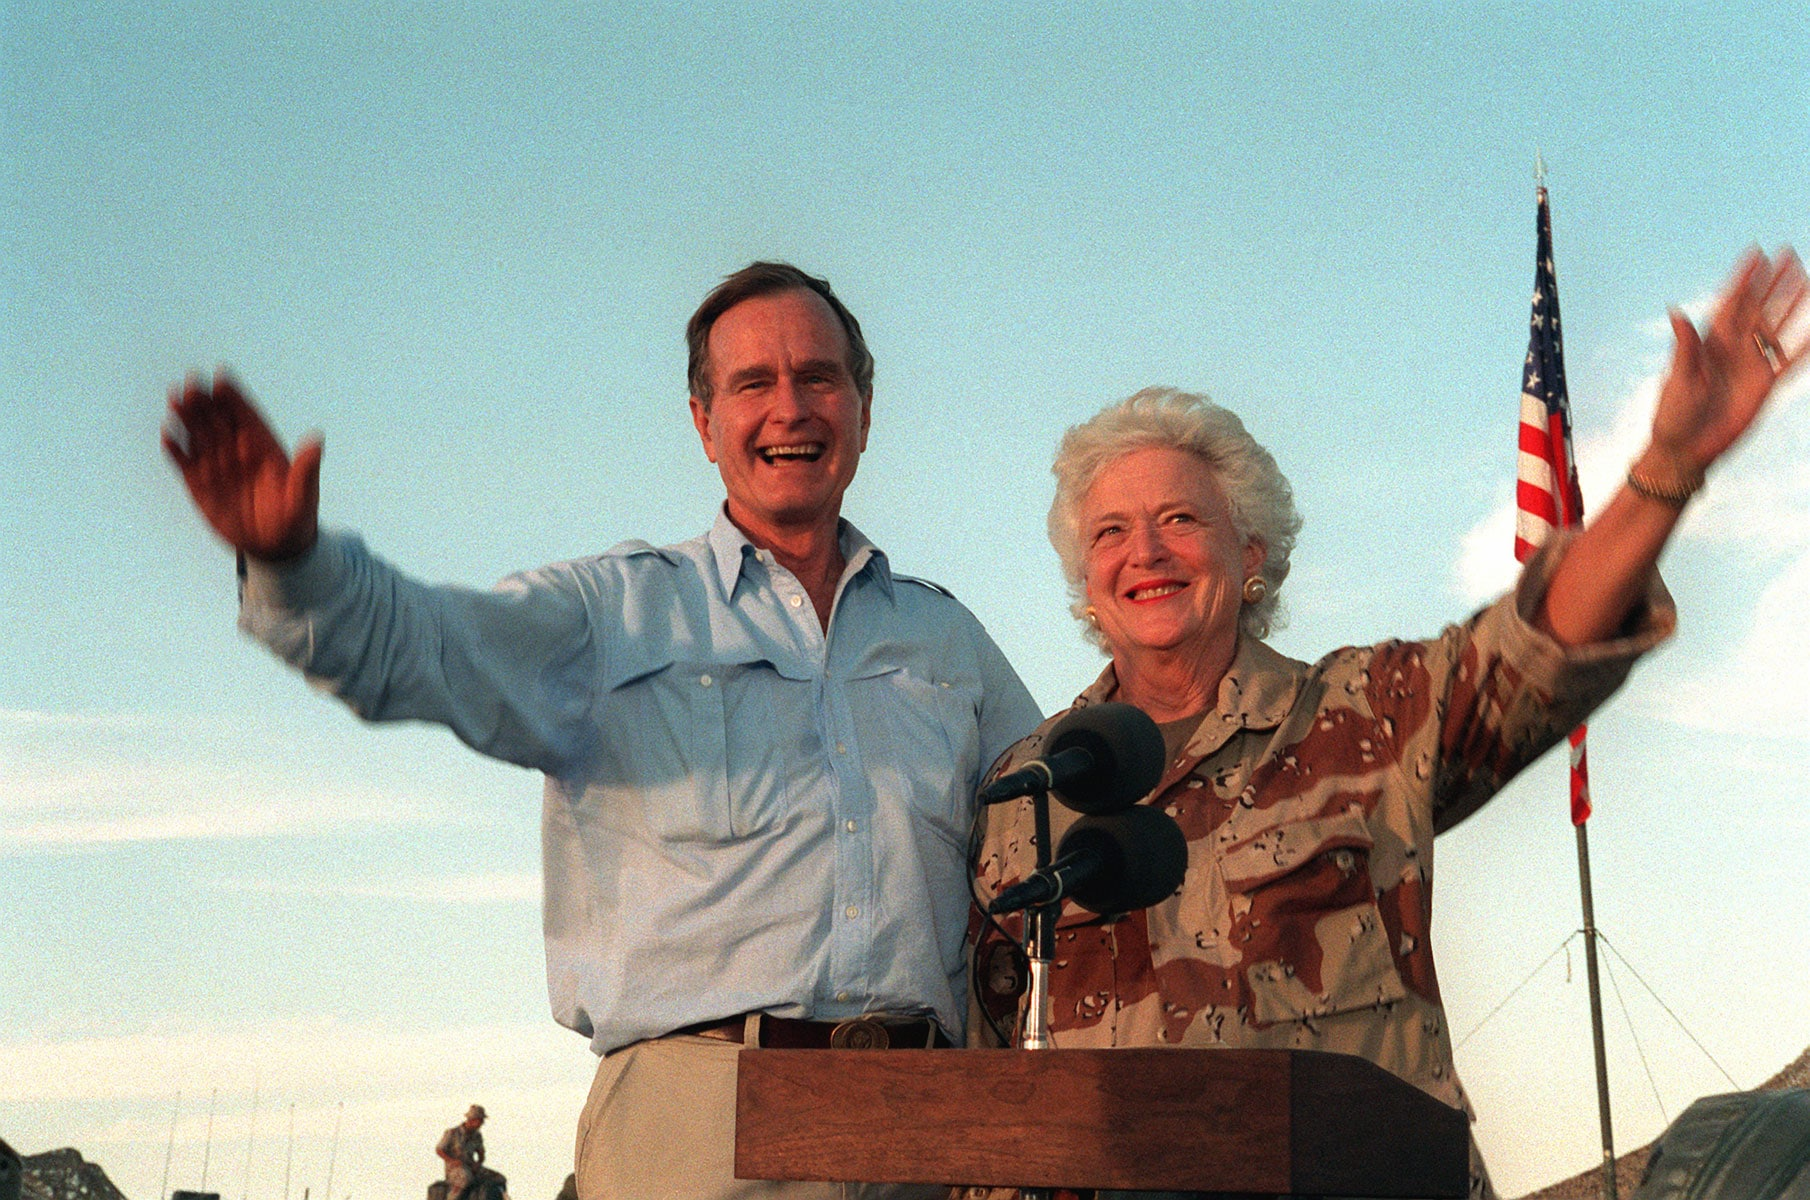 U.S. President George H.W. Bush and first lady Barbara Bush wave as they stand in the back of a vehicle during a visit to a desert encampment in Saudi Arabia, Nov. 22, 1990.